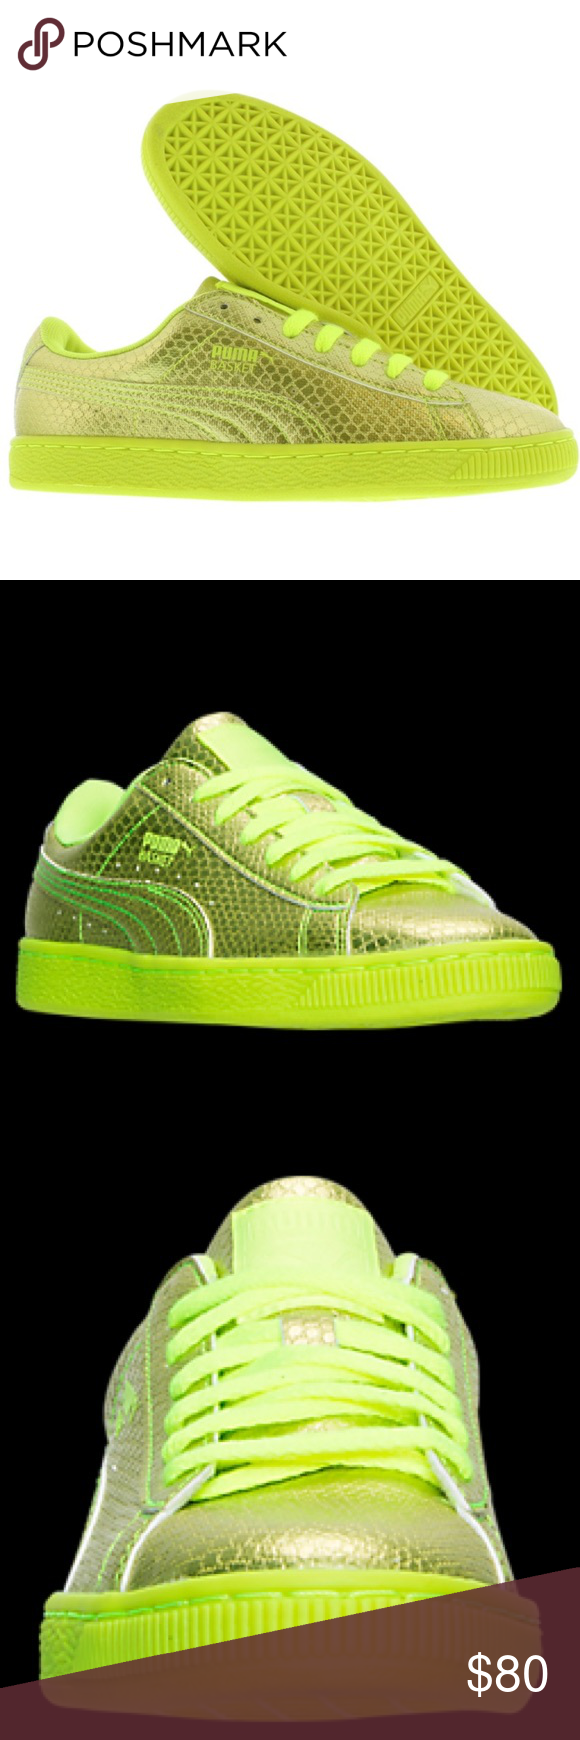 c18d14fba0f Rare Puma Creeper Basket Rihanna Sneakers 8.5BNWOB Super cute and vibrant Puma  Sneakers! Stand out with these gold neon yellow (highlighter yellow) Pumas!